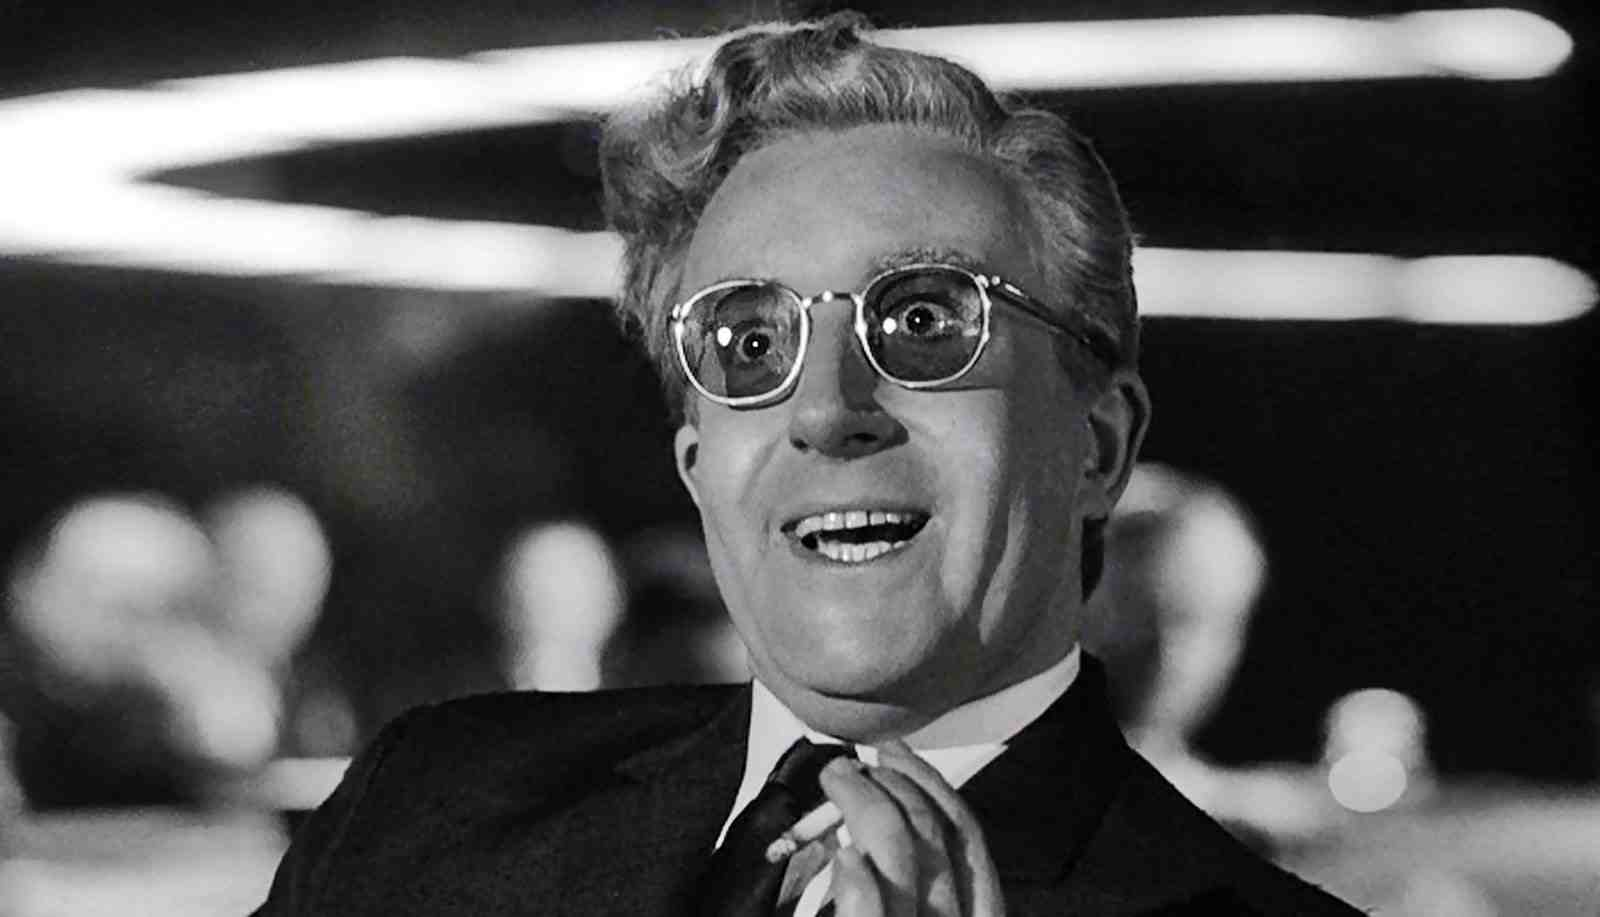 movies, old movies, Dr. Strangelove